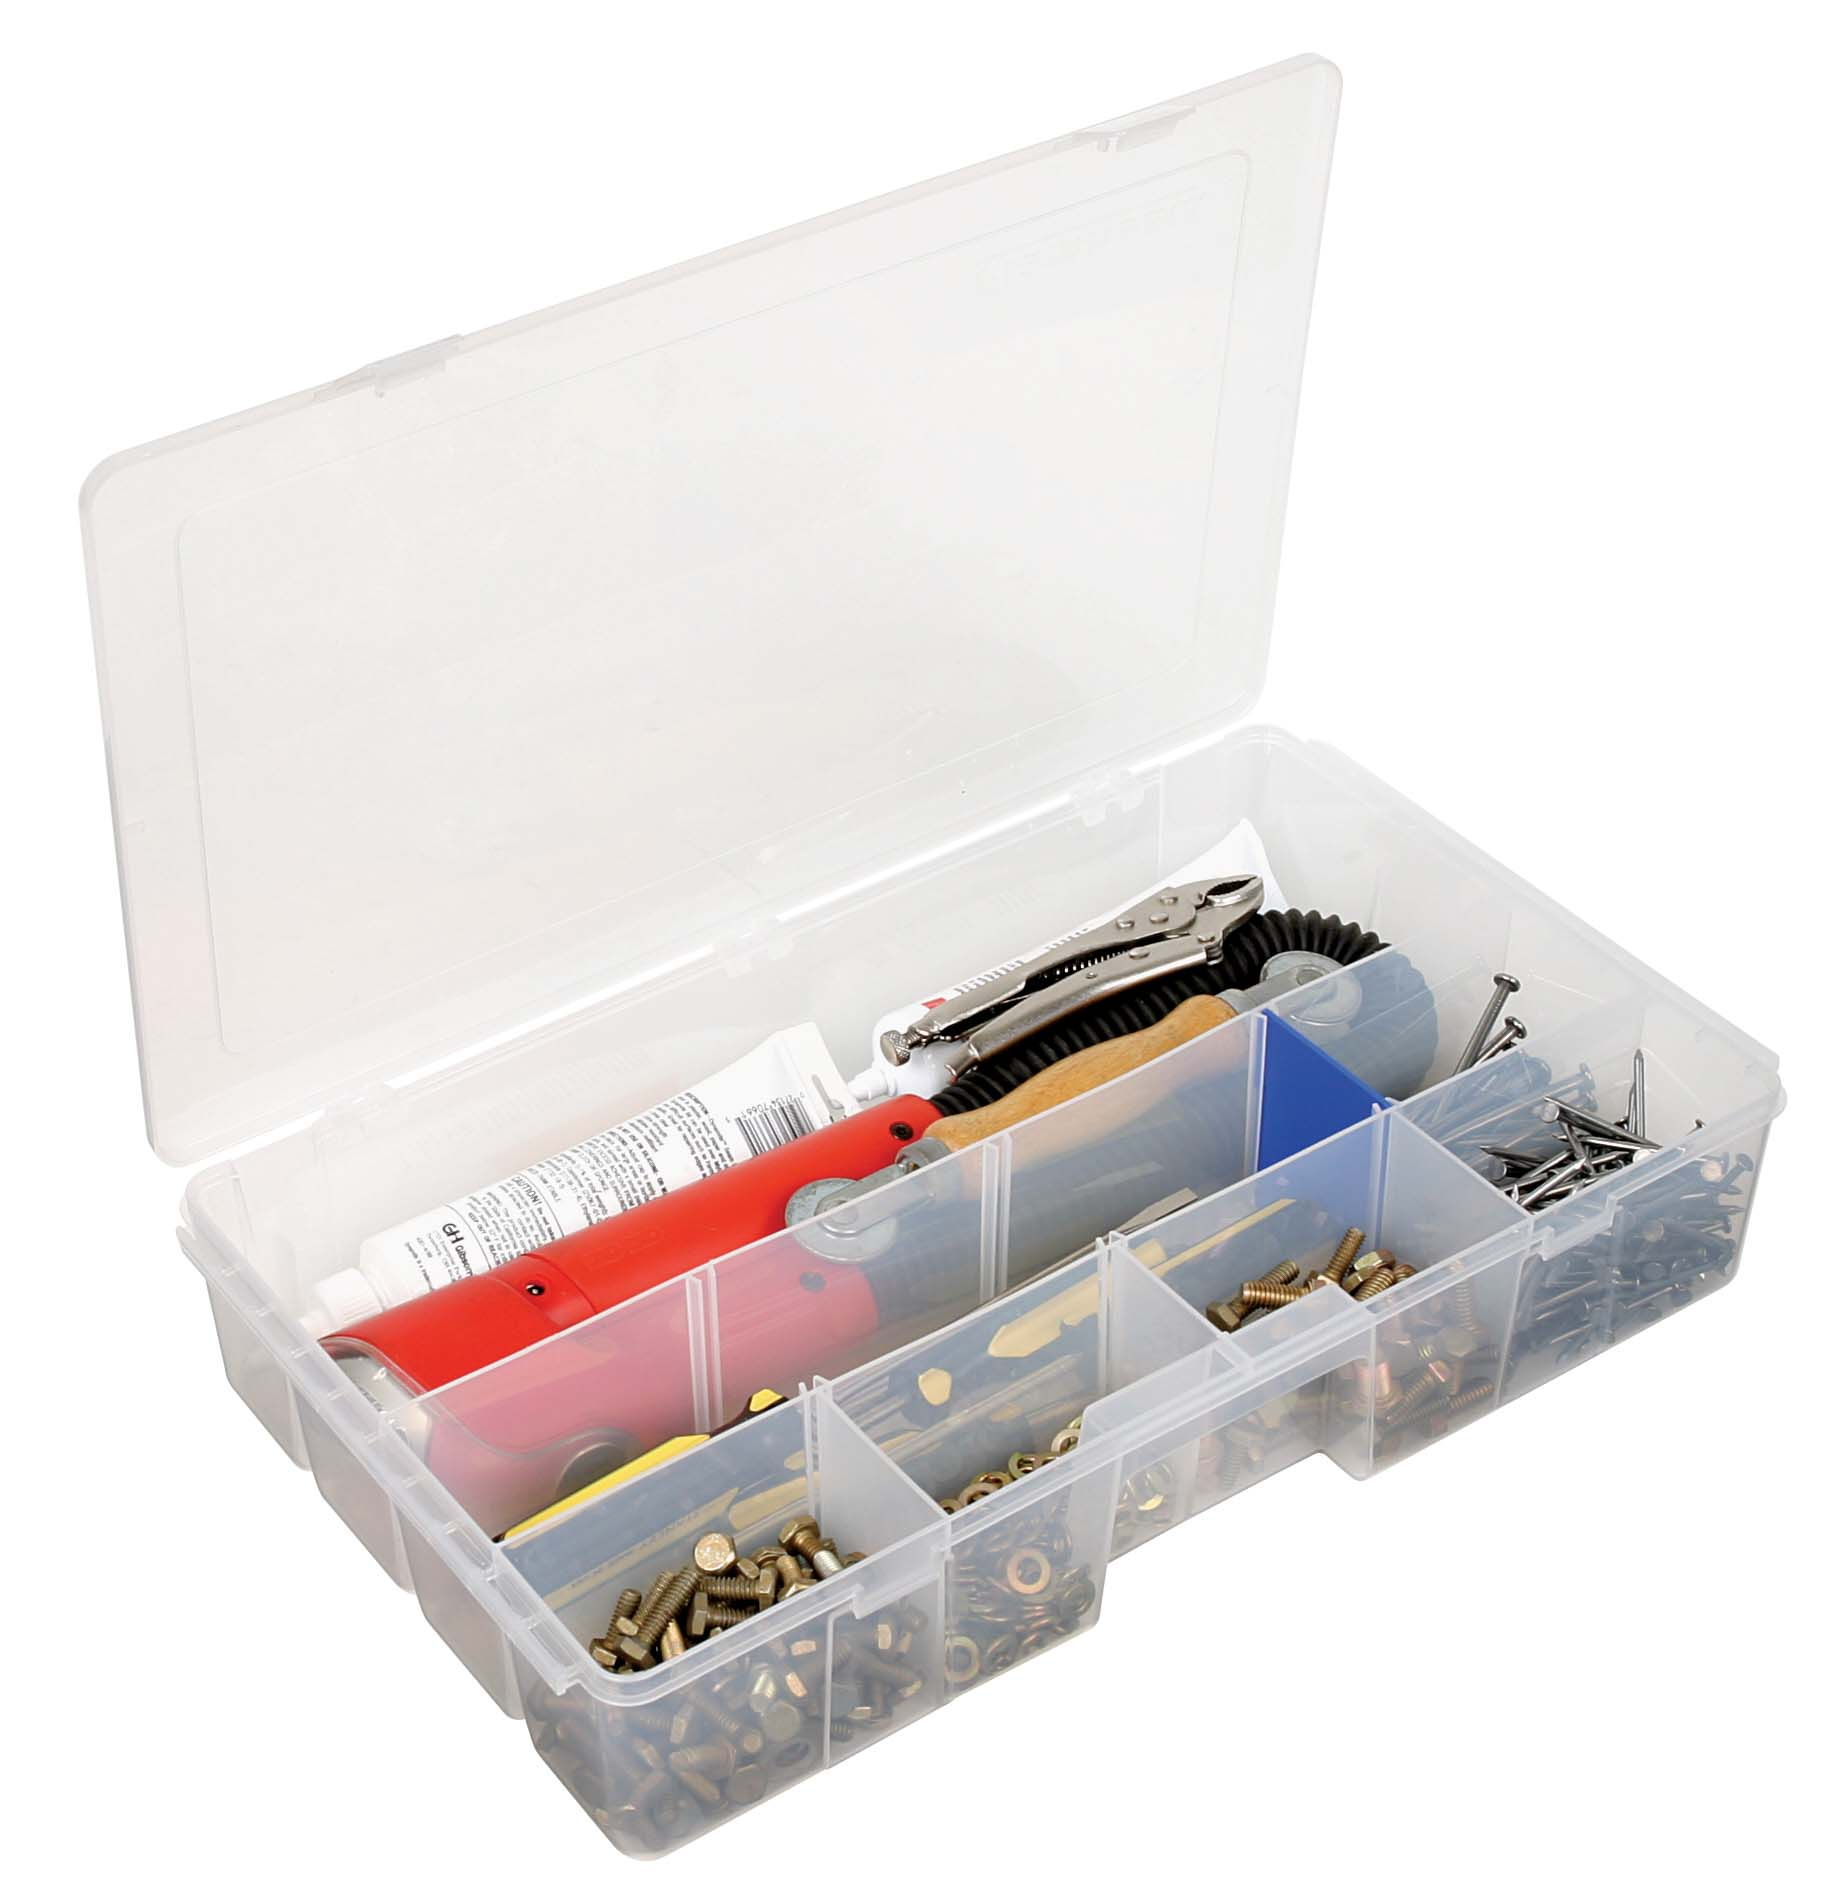 ... Sew Lutions Sewing Supply Storage System, 7003AB   7003AB ...